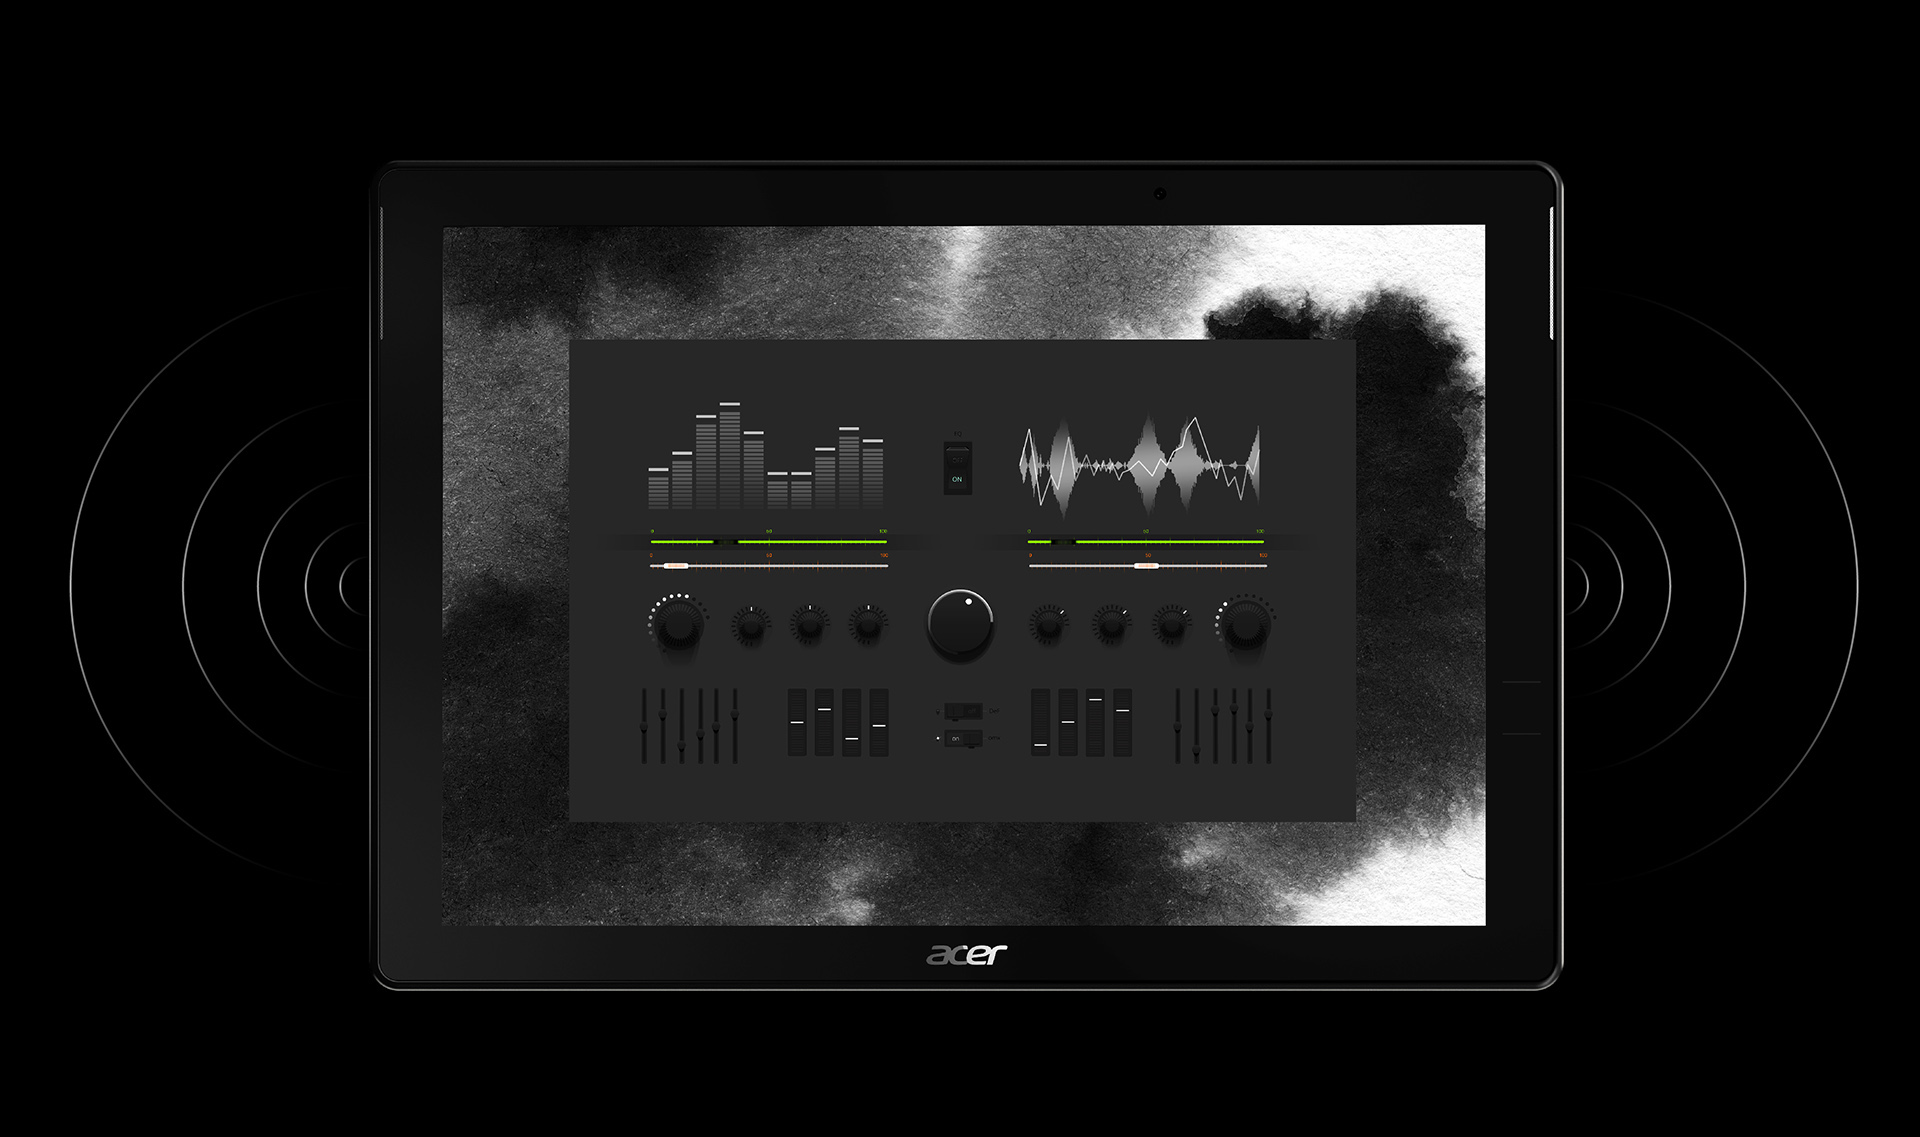 Switch 7 Black Edition - The Power of Sound ksp - Large